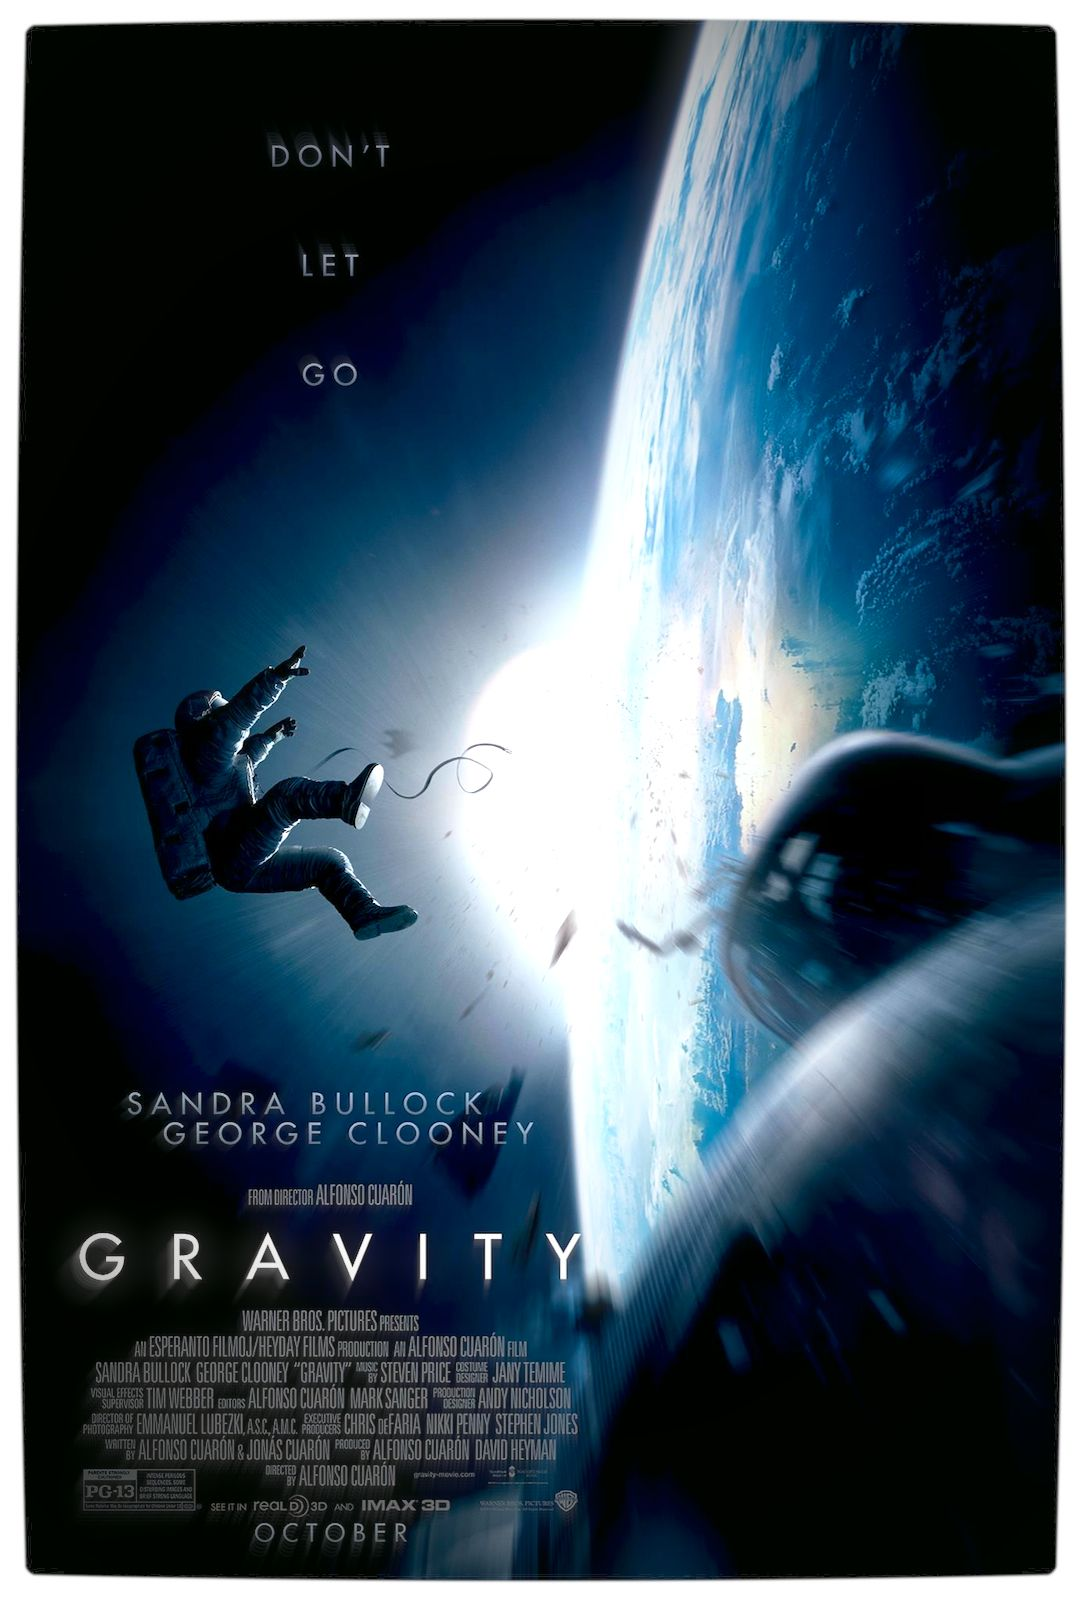 Gravity Official Trailers Gravity Movie George Clooney Gravity 2013